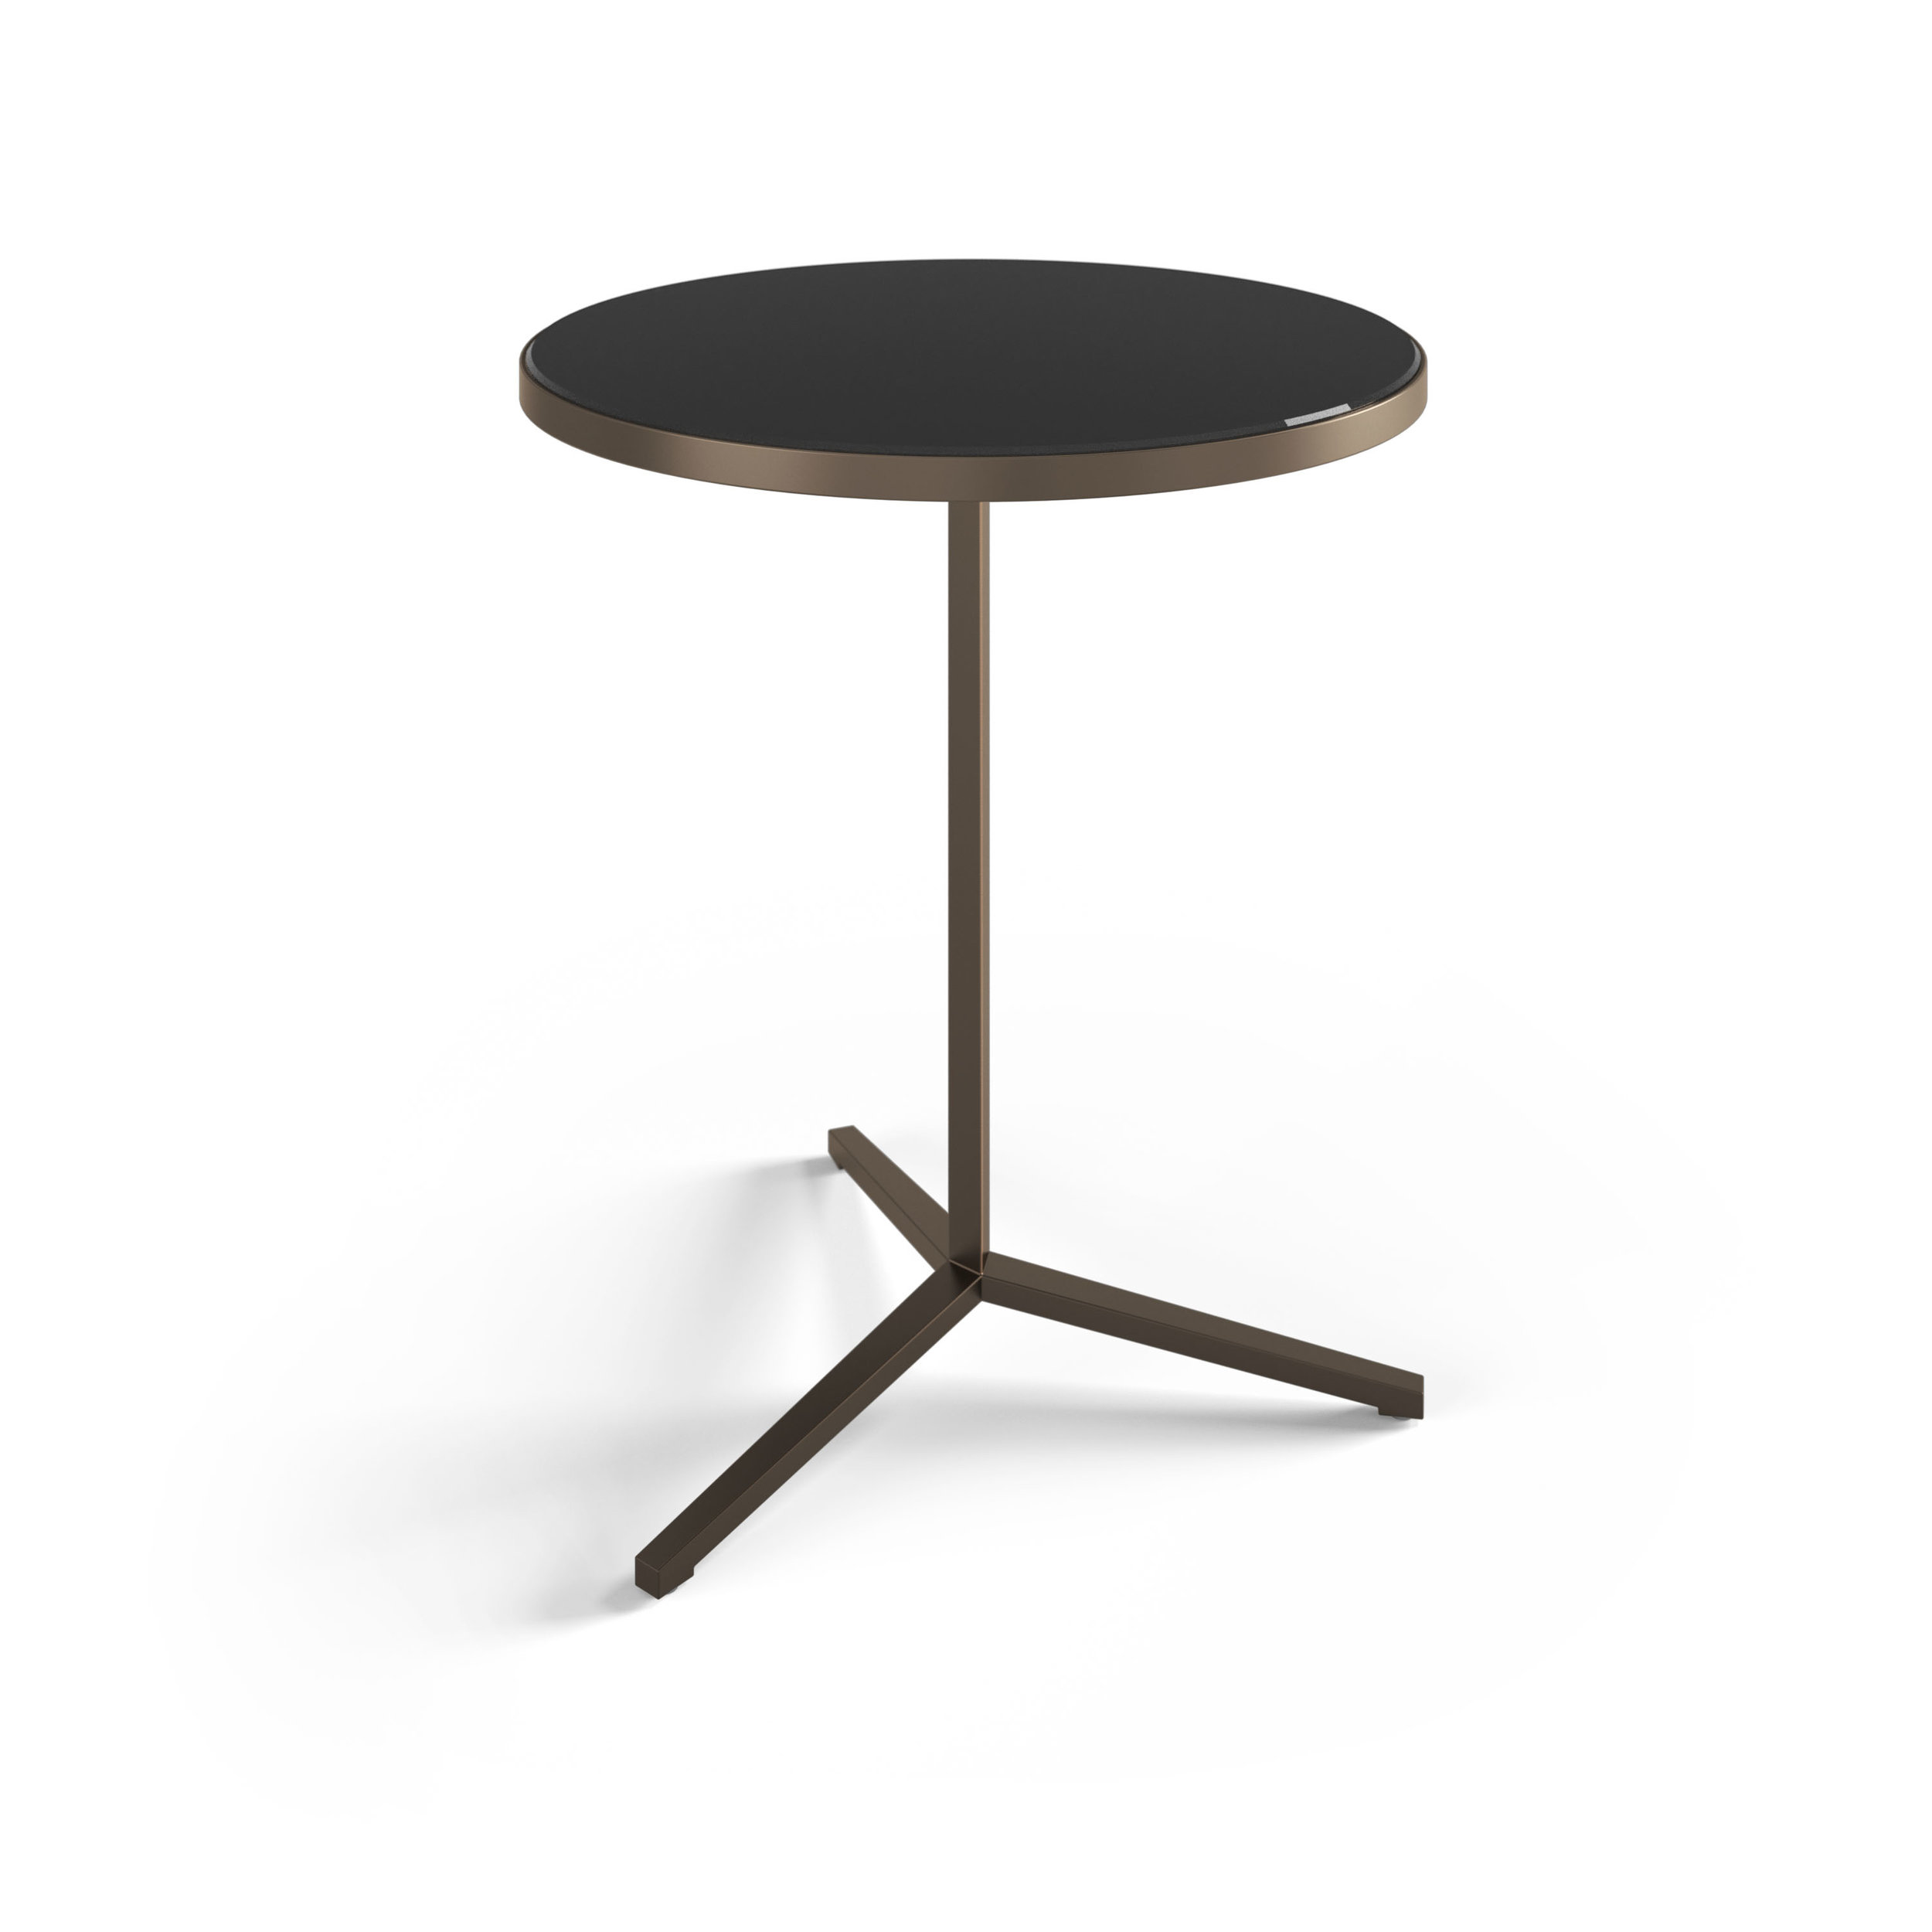 1467-1002-1003 (Museum Collection - Round Side Table - Glass Top).jpg